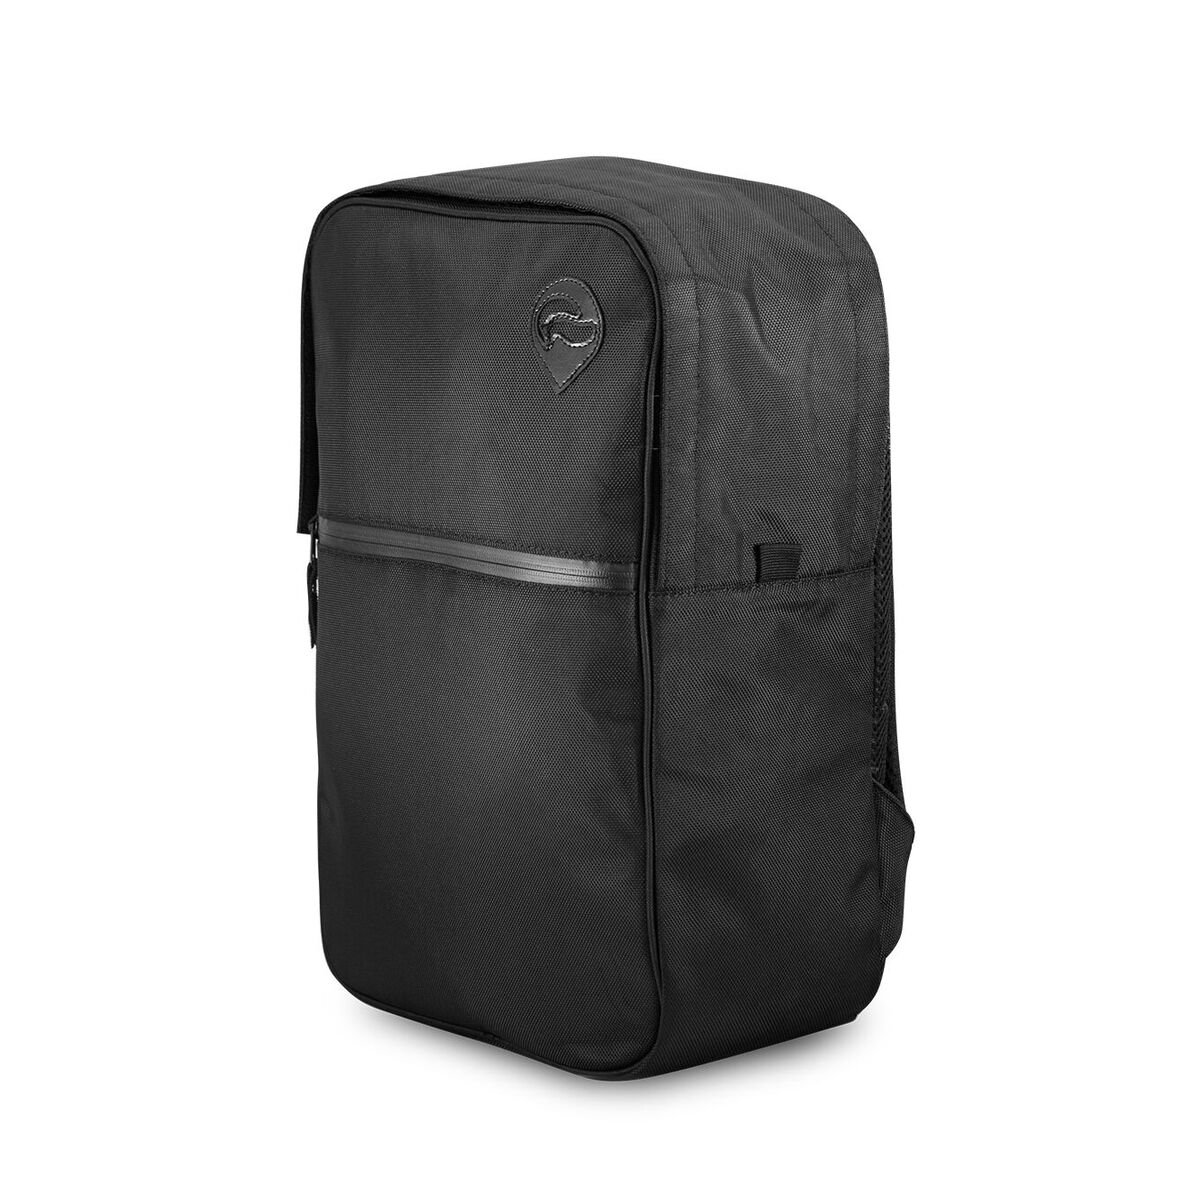 Skunk Vatra Urban Backpack Black - Smell Proof - Water Proof - NOW WITH COMBO LOCK